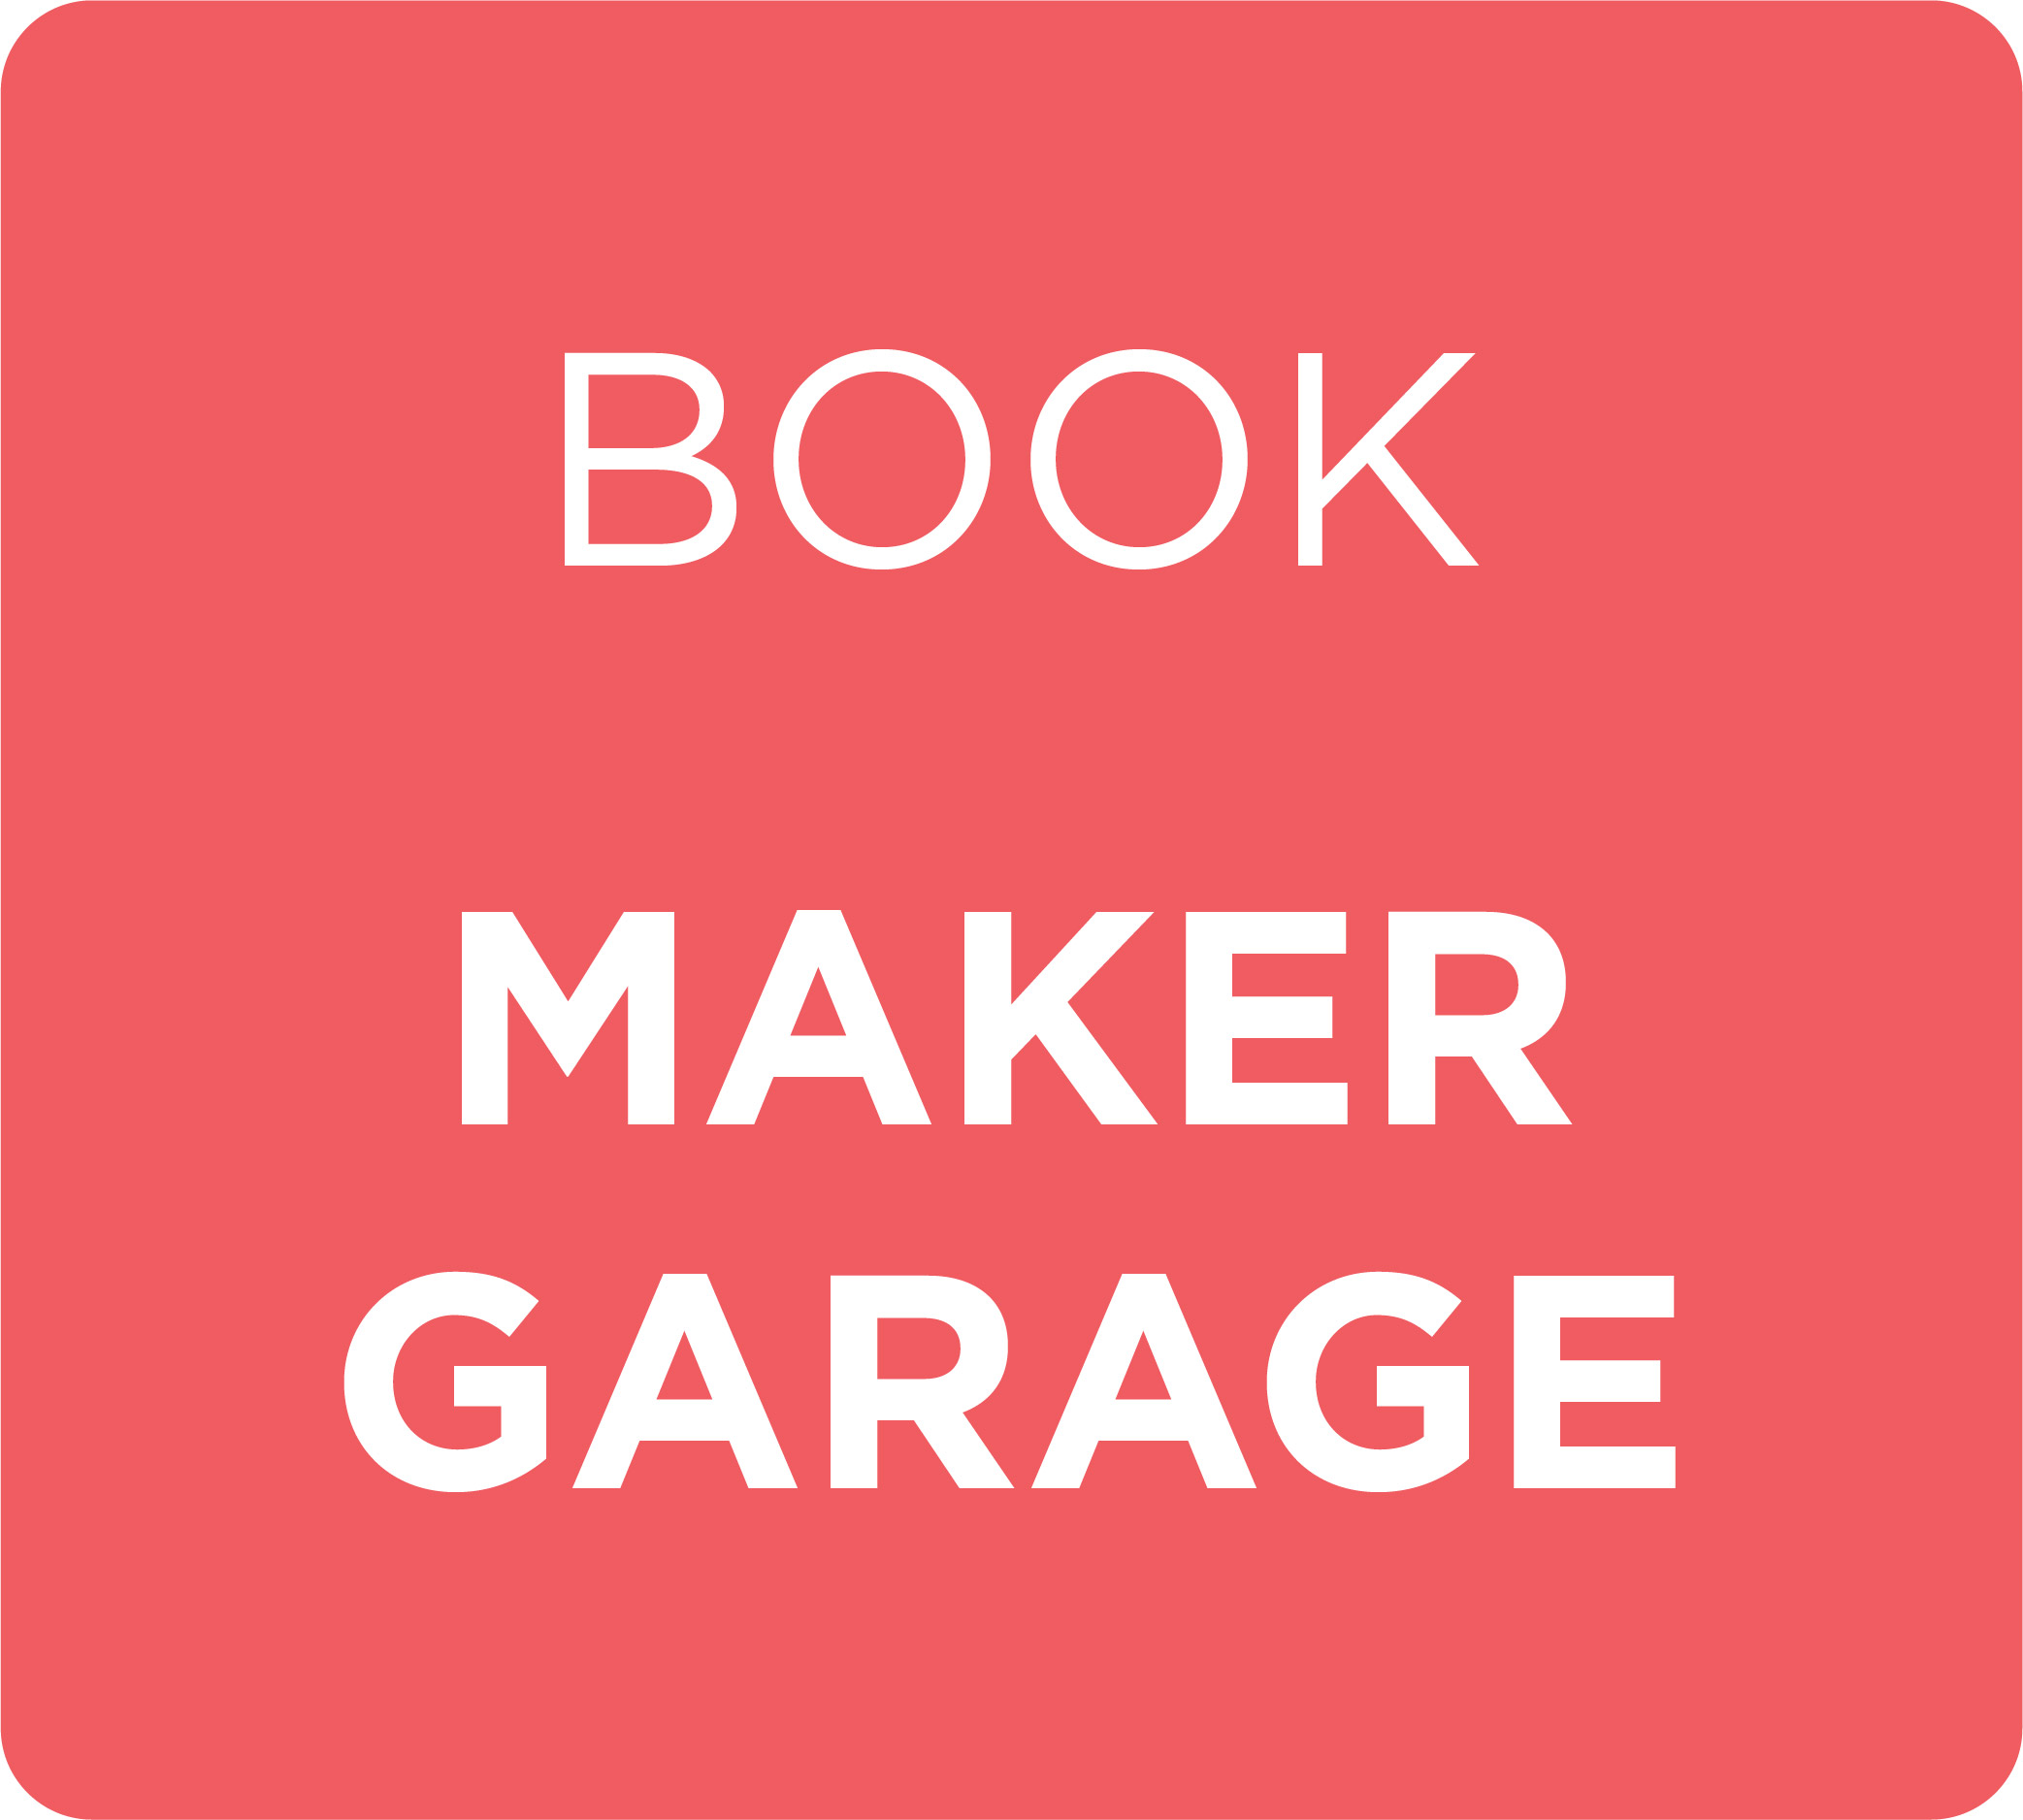 Book Maker Garage